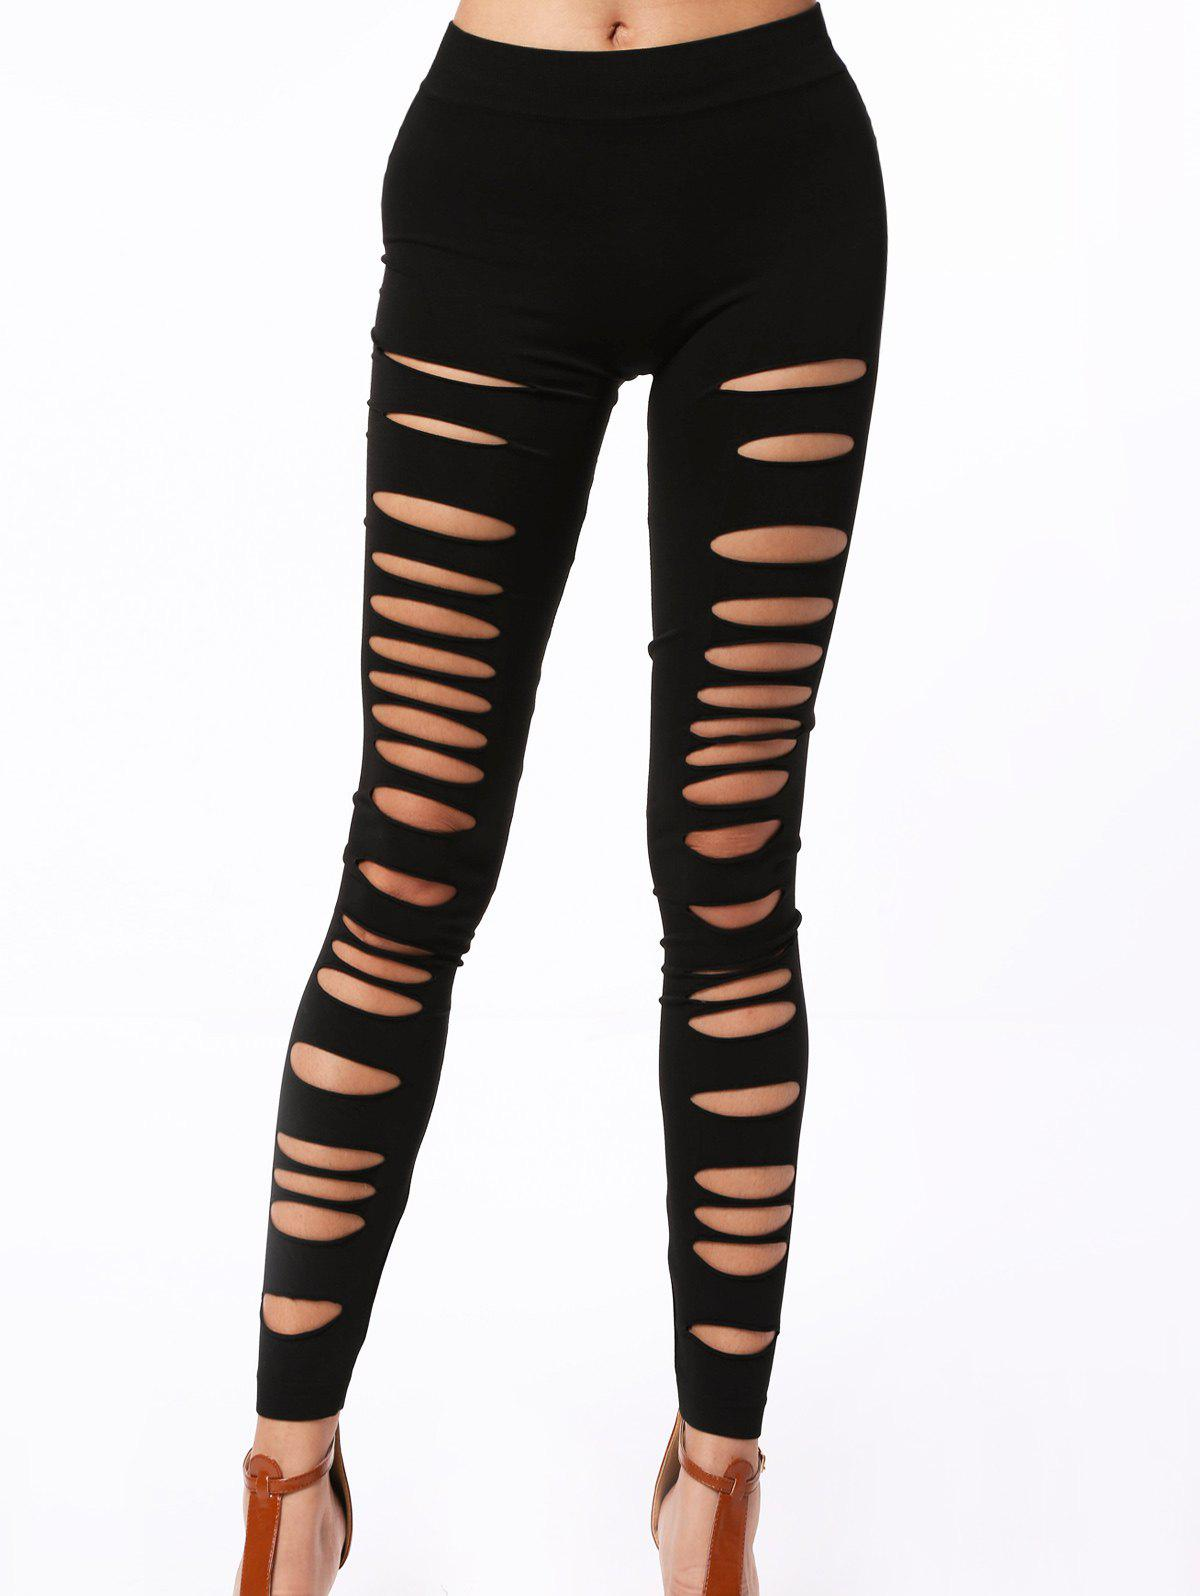 Stylish Solid Color Hollow Out High Elasticity Slimming Leggings For Women - BLACK ONE SIZE